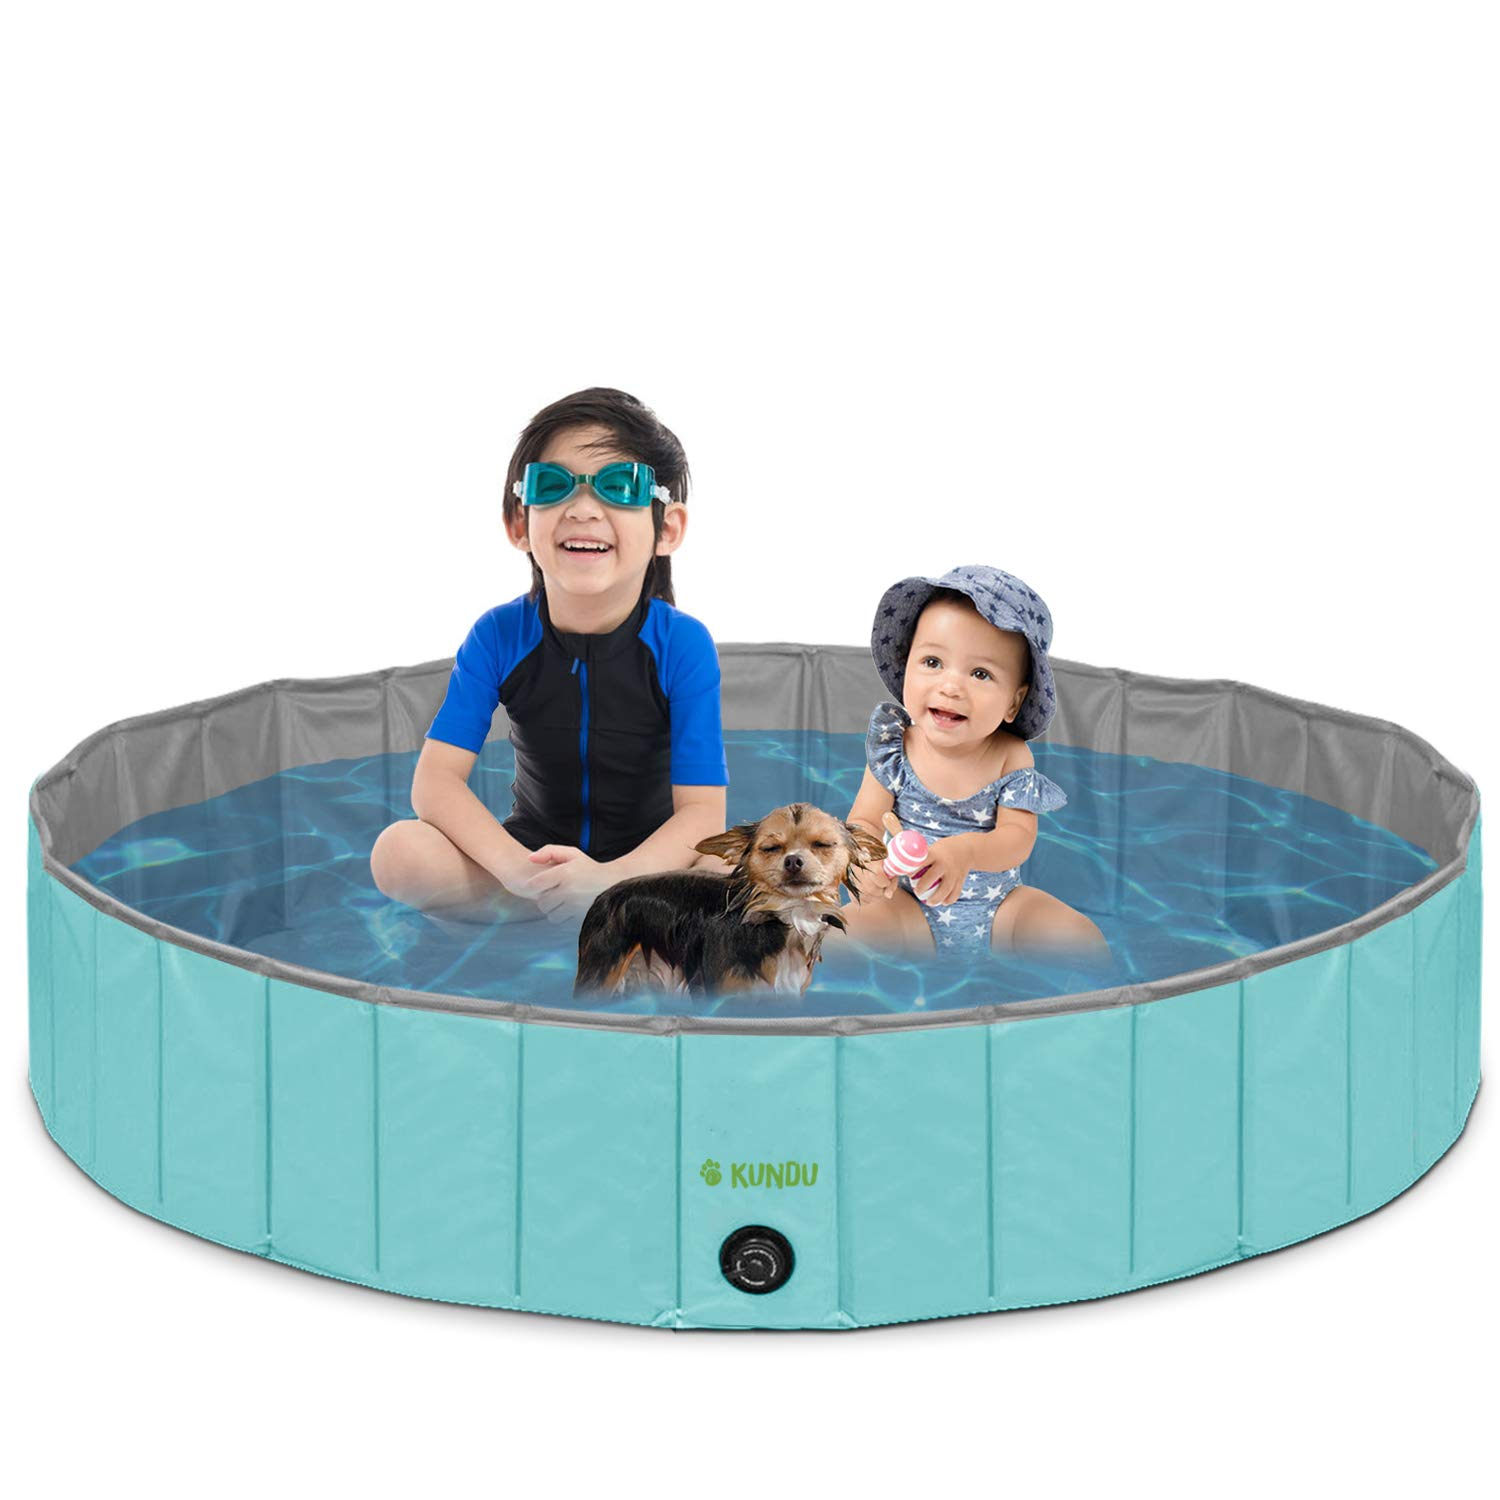 Kundu Round (47'' Diameter x 12'' Deep) Heavy Duty PVC Pets and Kids Outdoor Pool/Bathing Tub - Portable & Foldable - Large